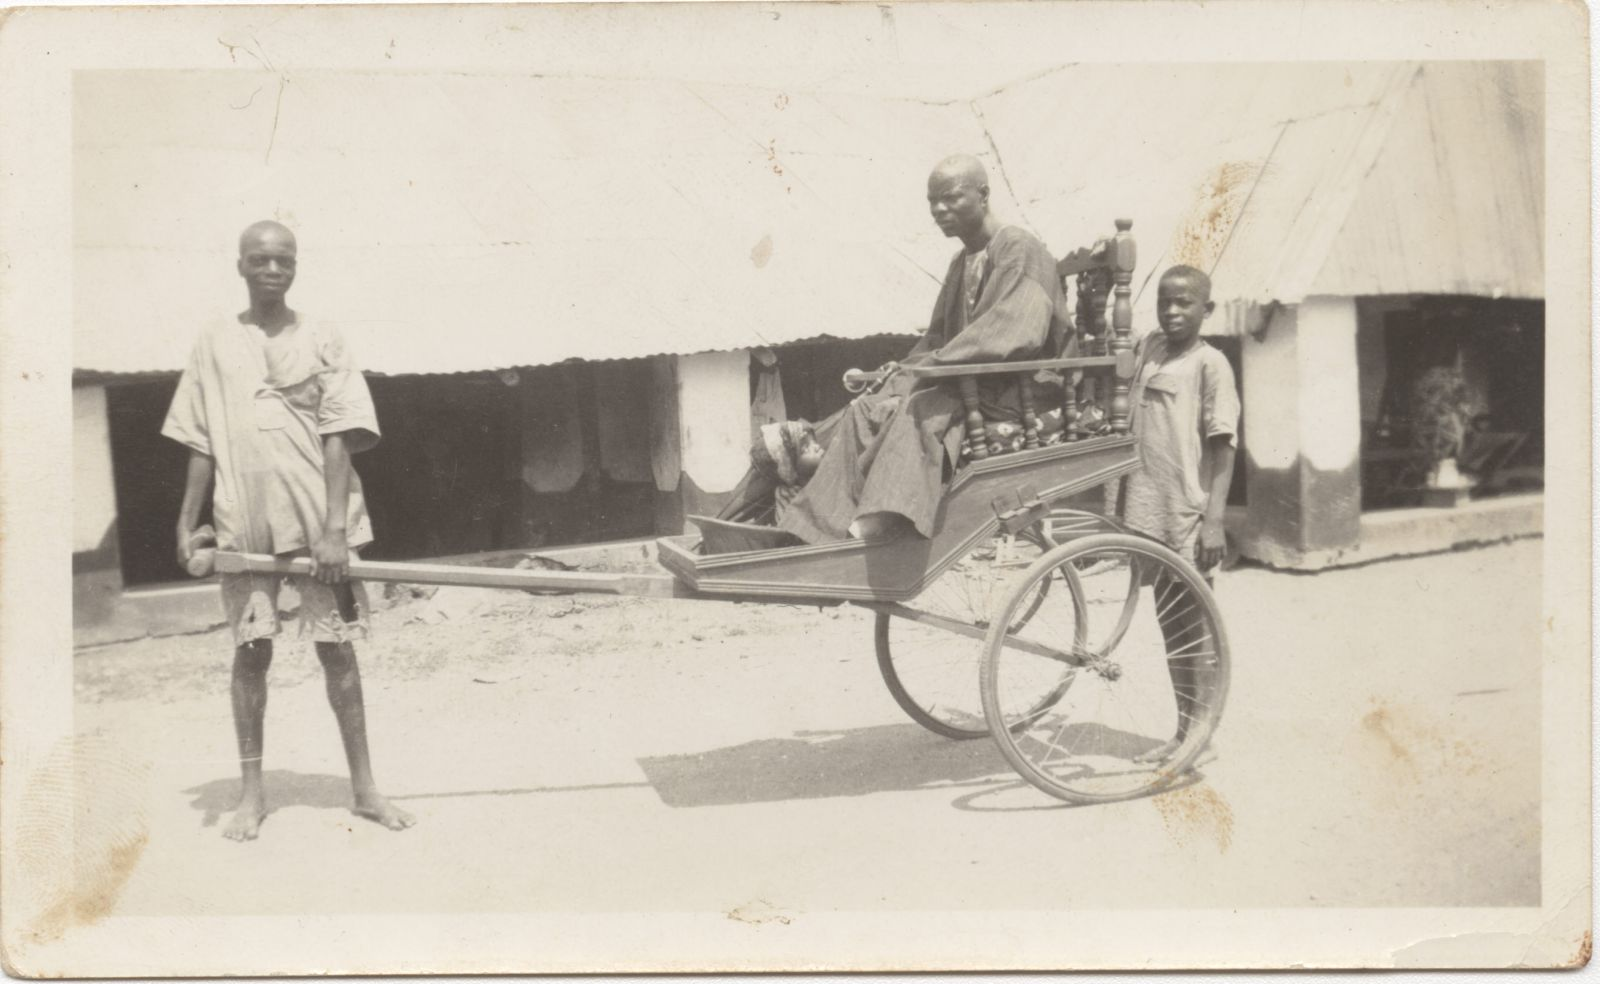 Fig. 2 Ray Northrip, Nigeria Mission photograph